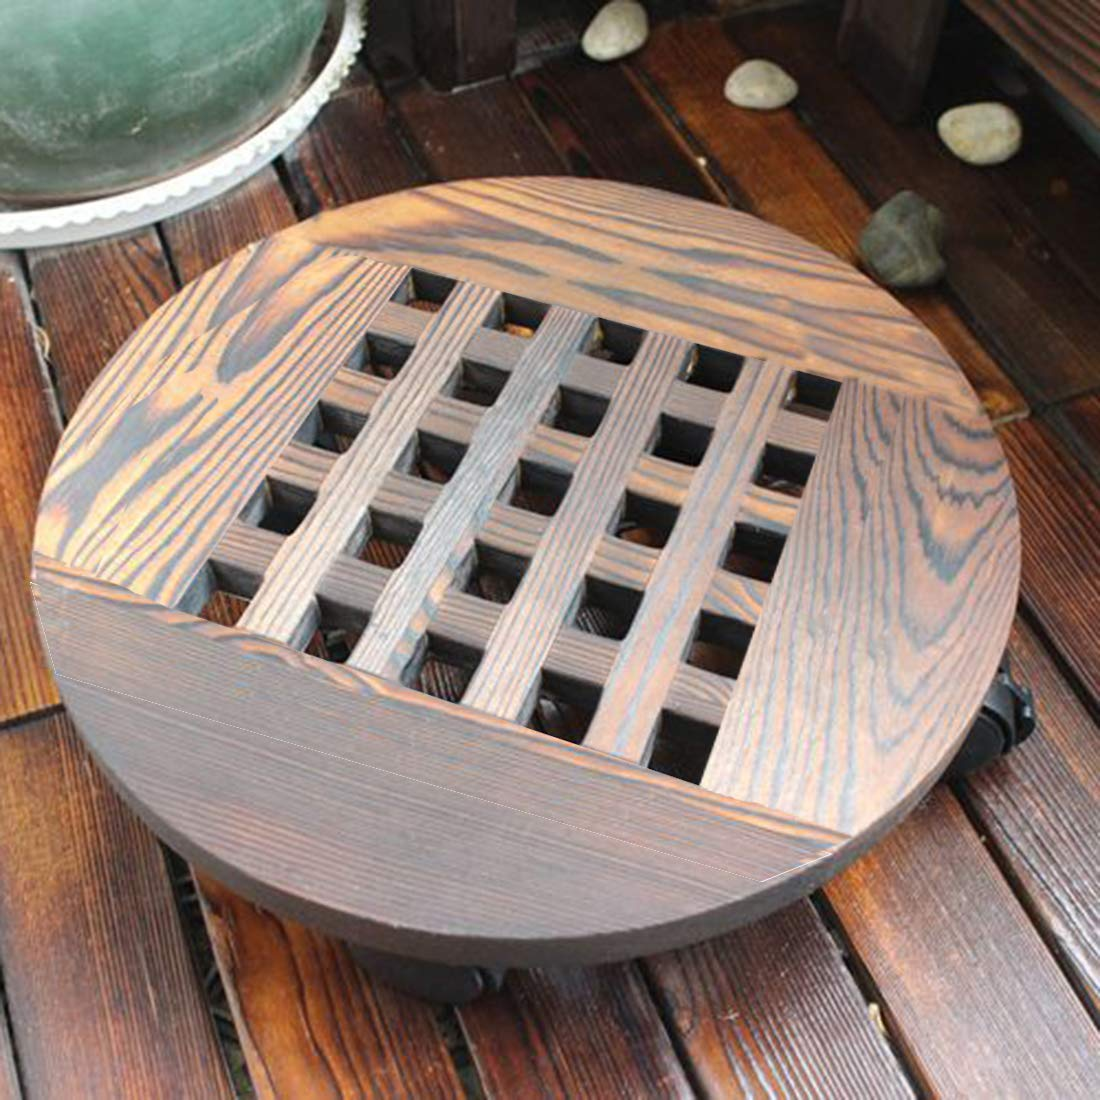 Pot Holder Round Planter Dolly with Casters Plant Caddy Indoor and Outdoor MORINN Wood Plant Stand 14 inch with Wheels